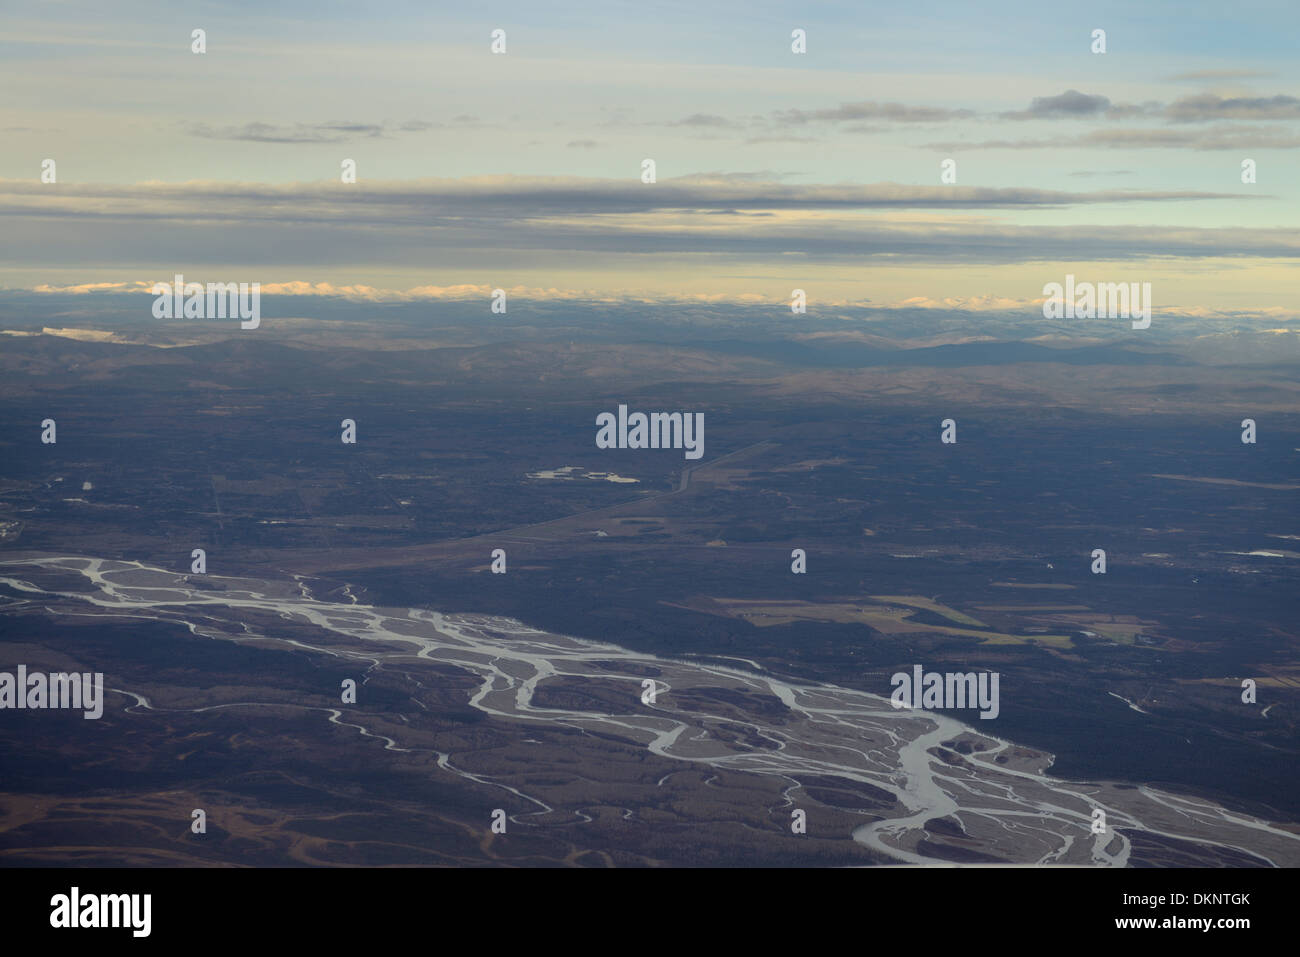 Aerial view of the Tanana River at the North Pole Alaska USA with the Chena Lakes and Brooks Range mountains - Stock Image